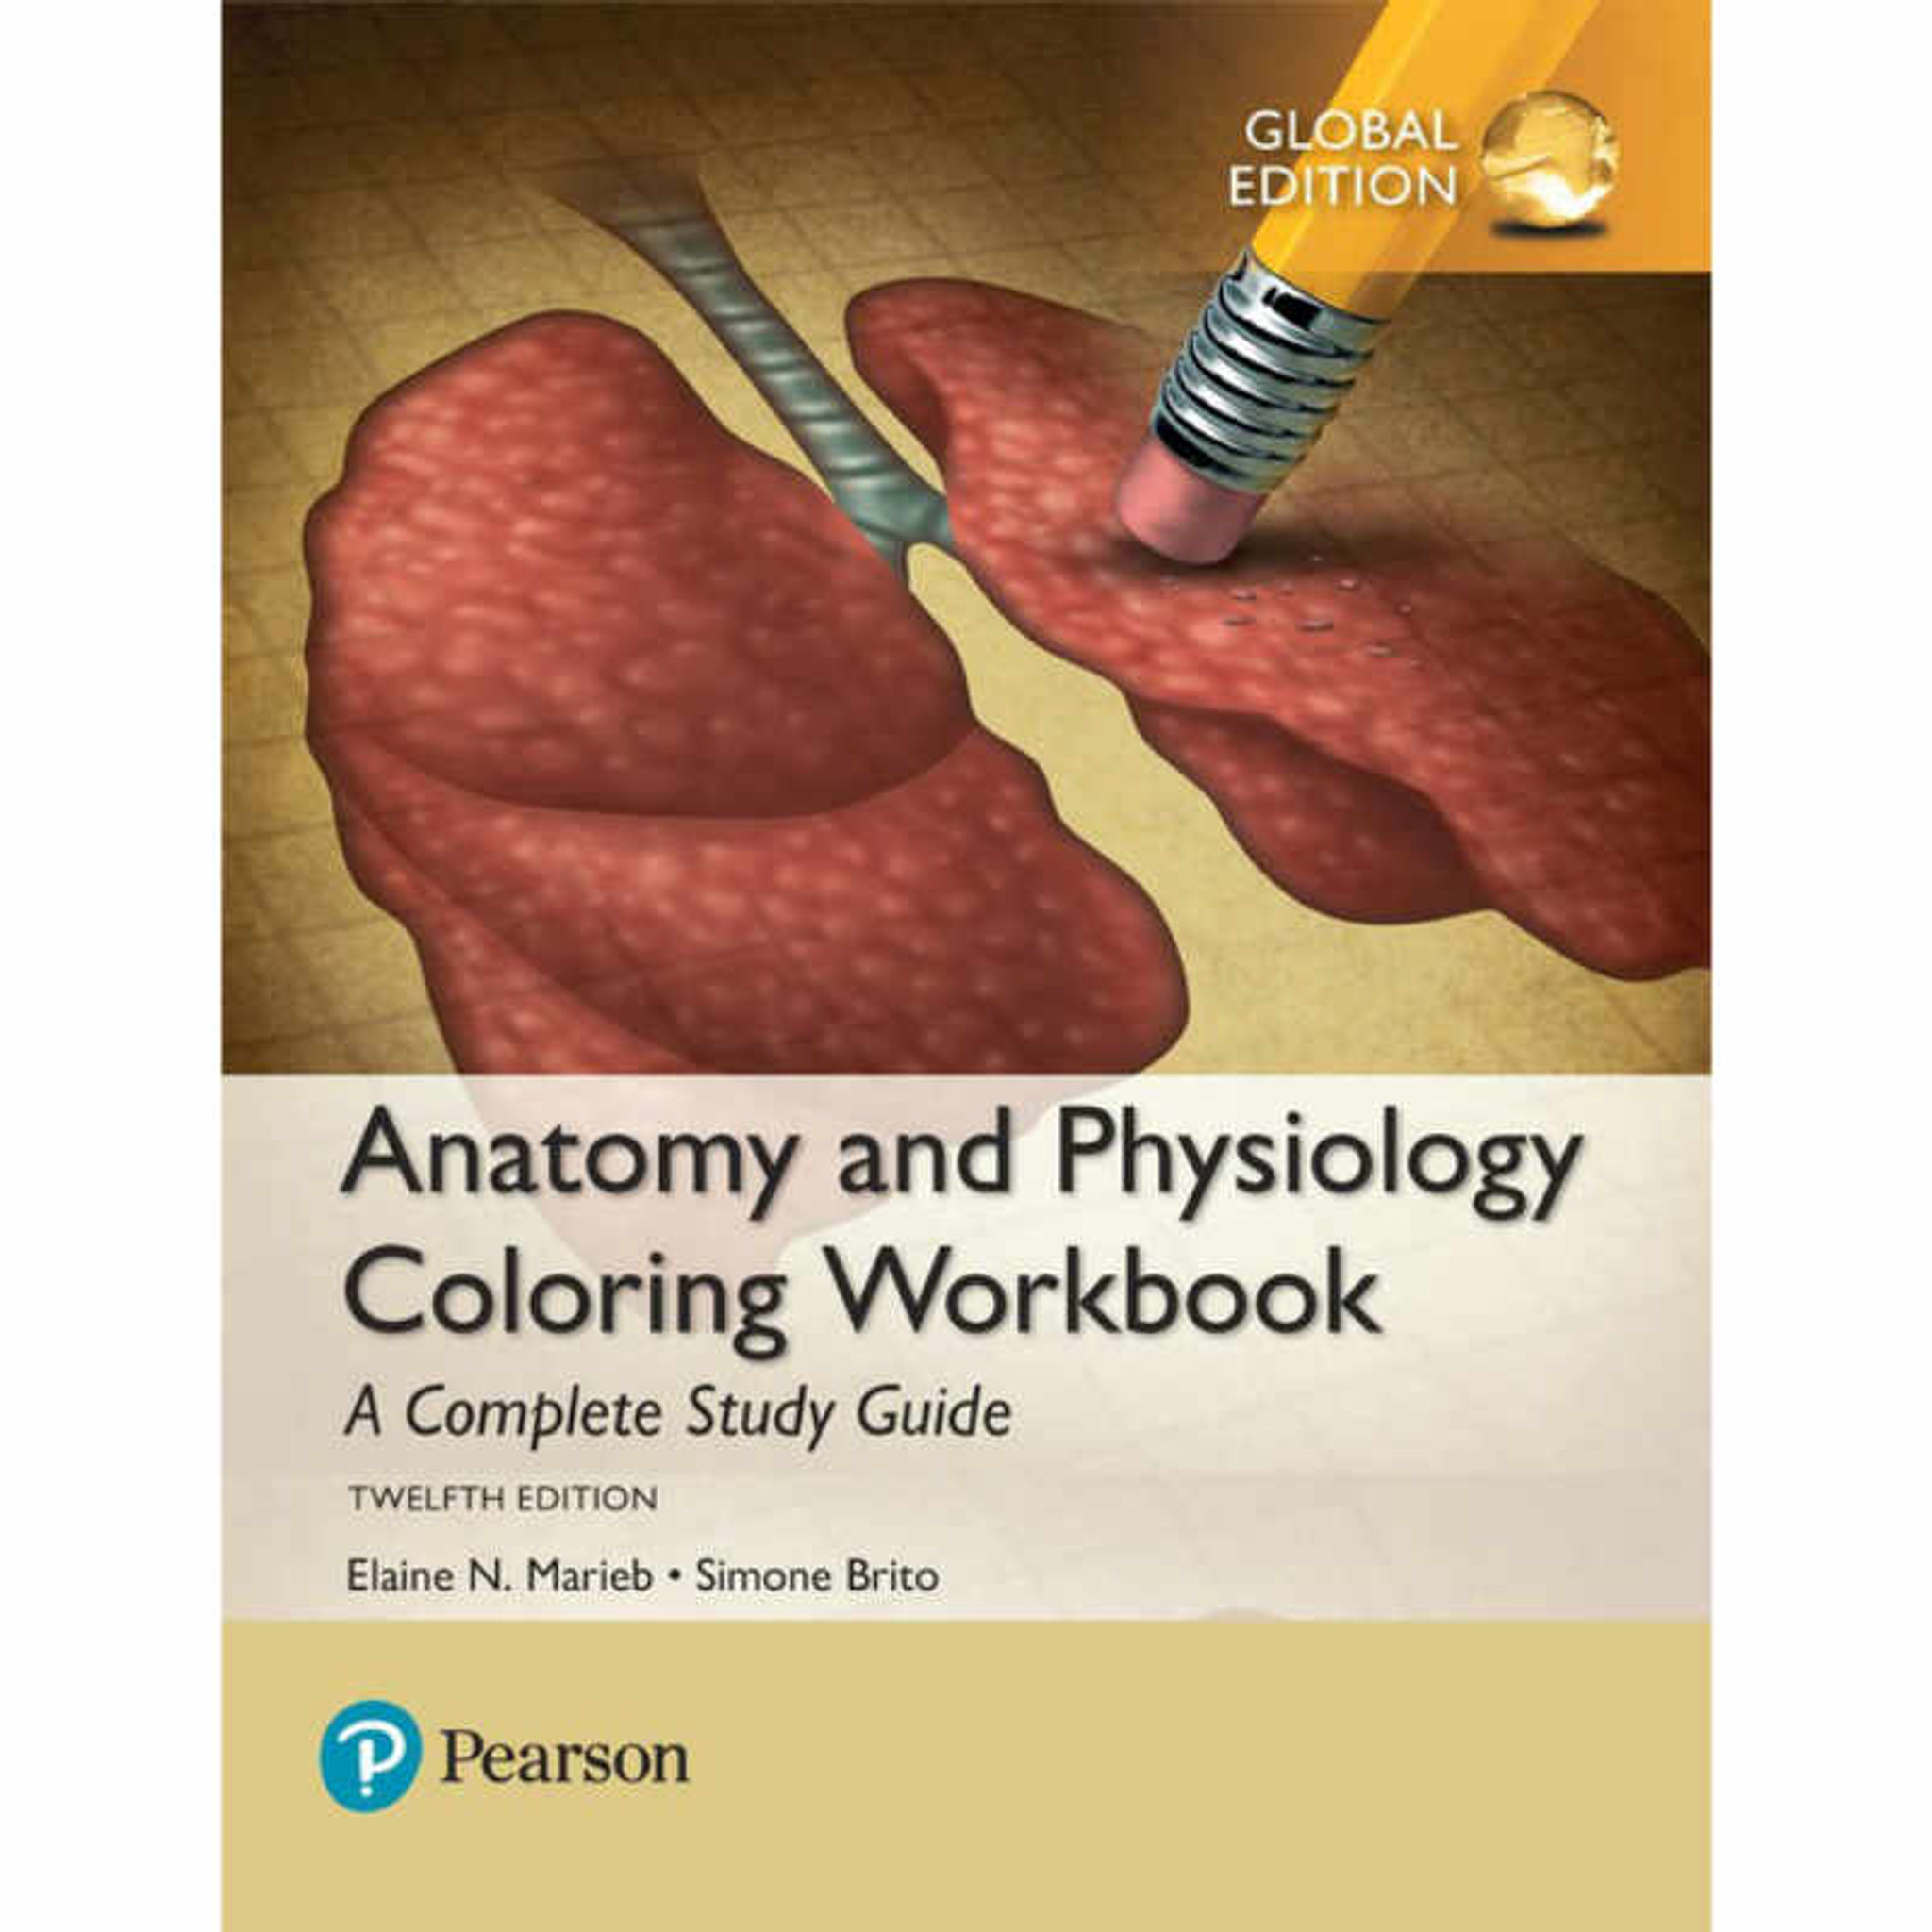 Anatomy and Physiology Coloring Workbook: A Complete Study Guide (12th  Edition) Elaine N. Marieb and Simone Brito IE